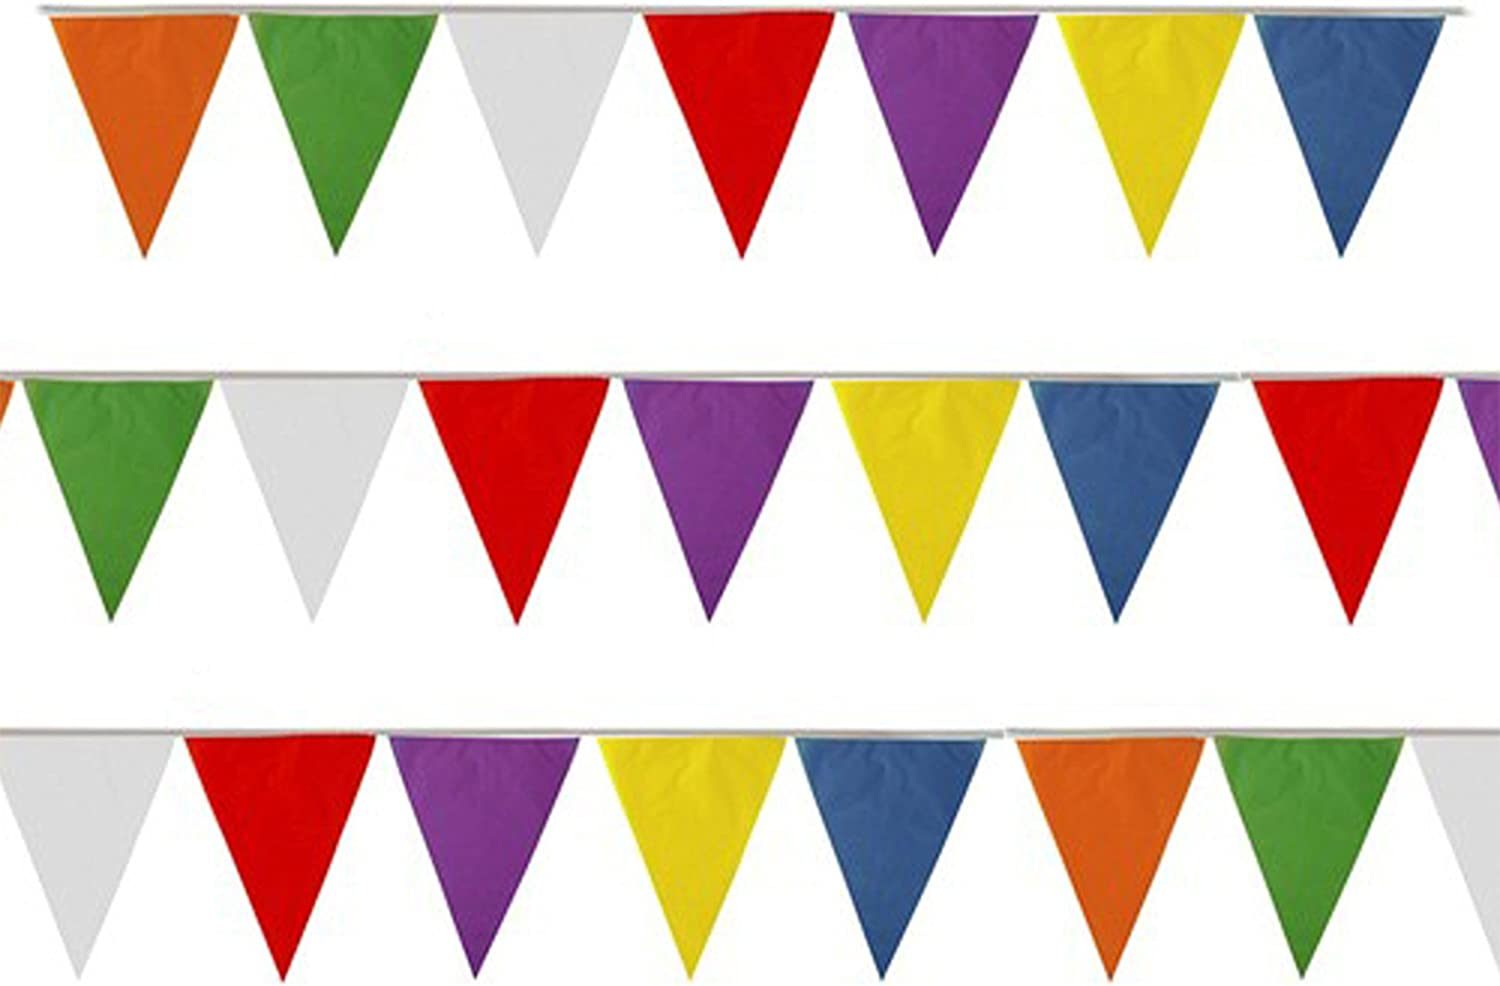 Orange and White Triangle Flag Bunting 54 flags on this 20 metre Long Bunting